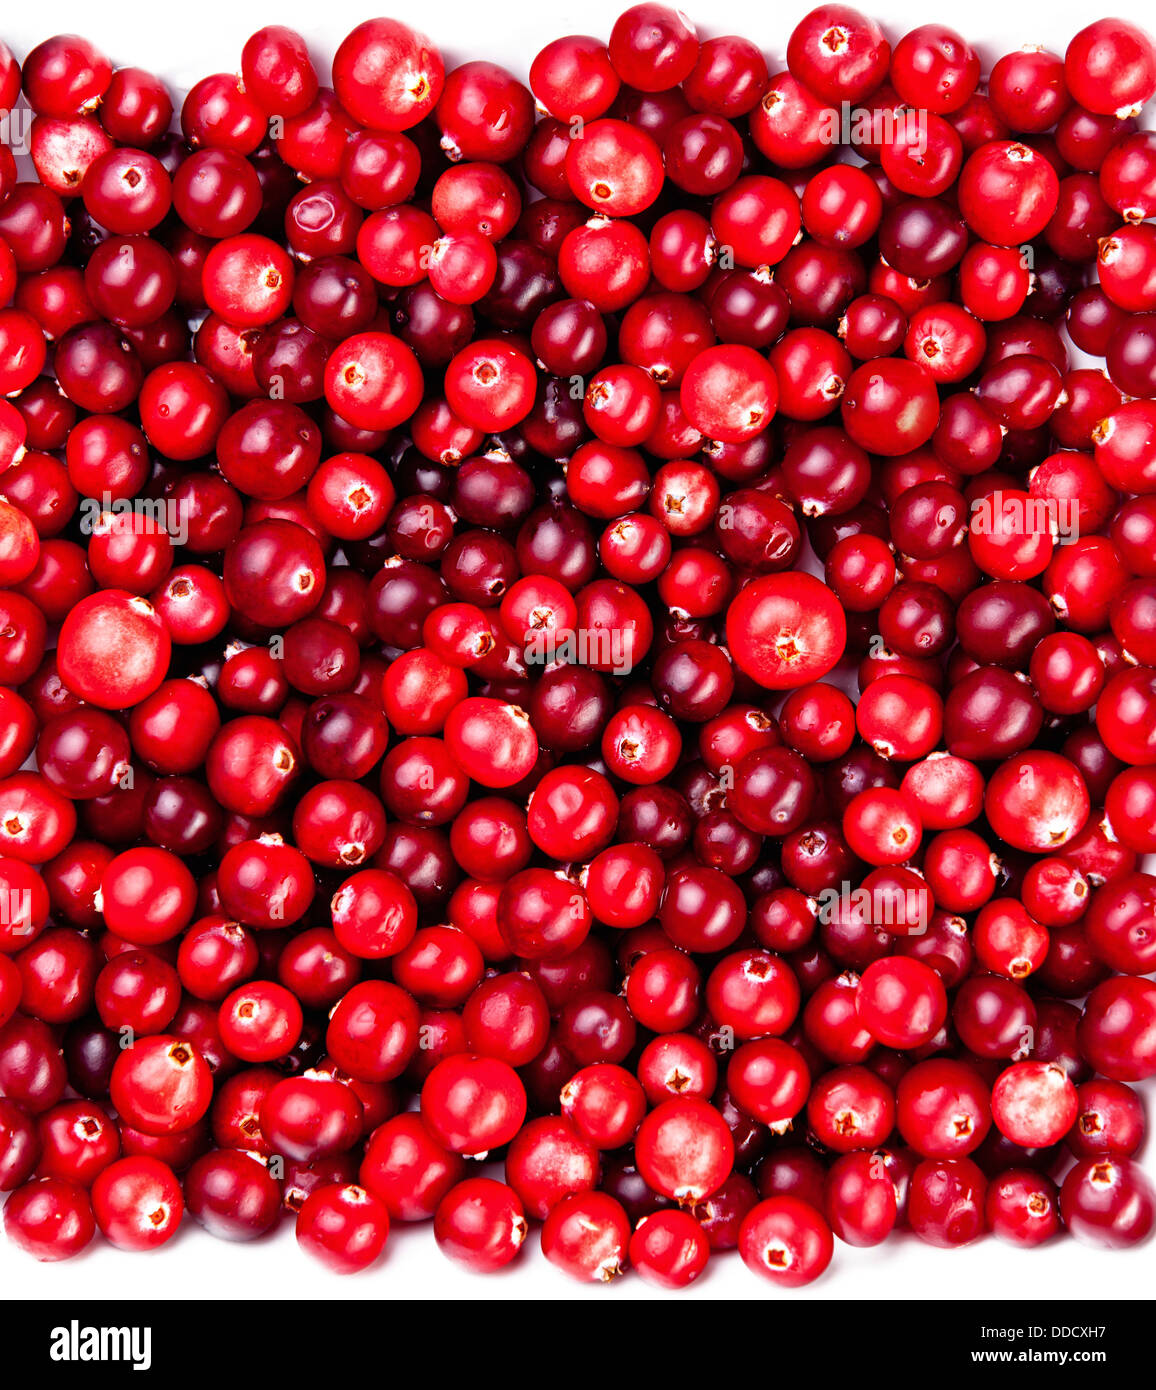 Red ripe cranberries background - Stock Image